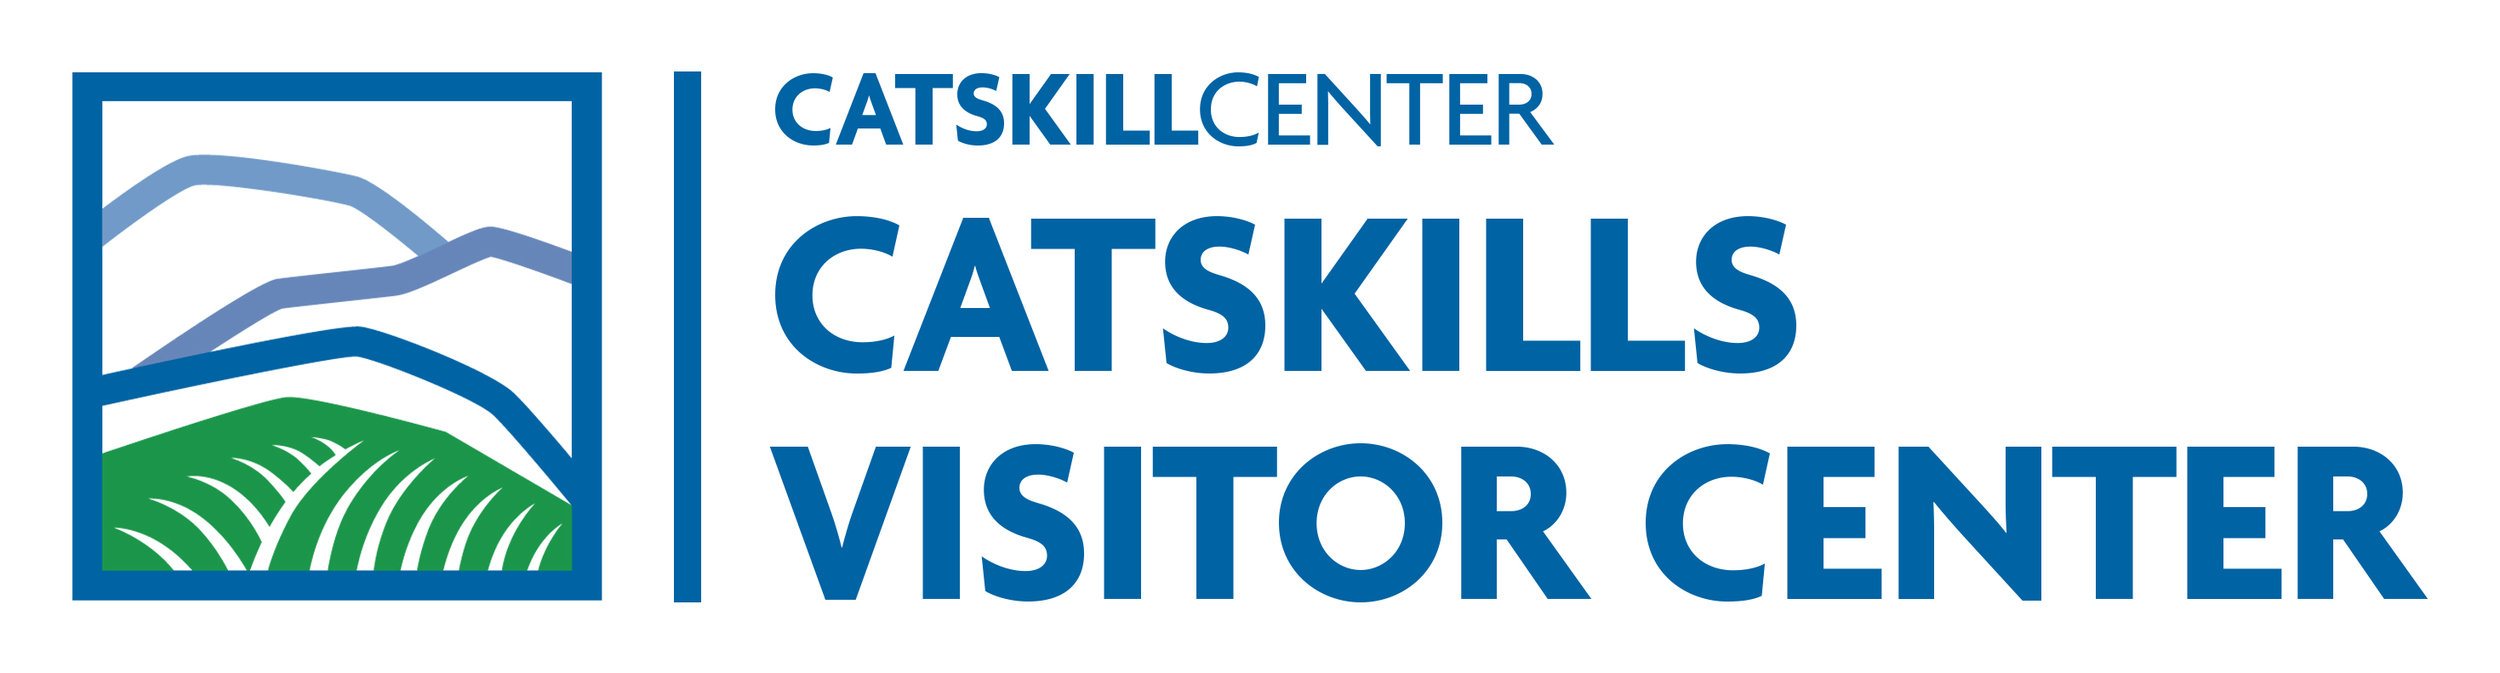 CCCD_Wordmark_Catskills_Visitor_Center (1).jpg